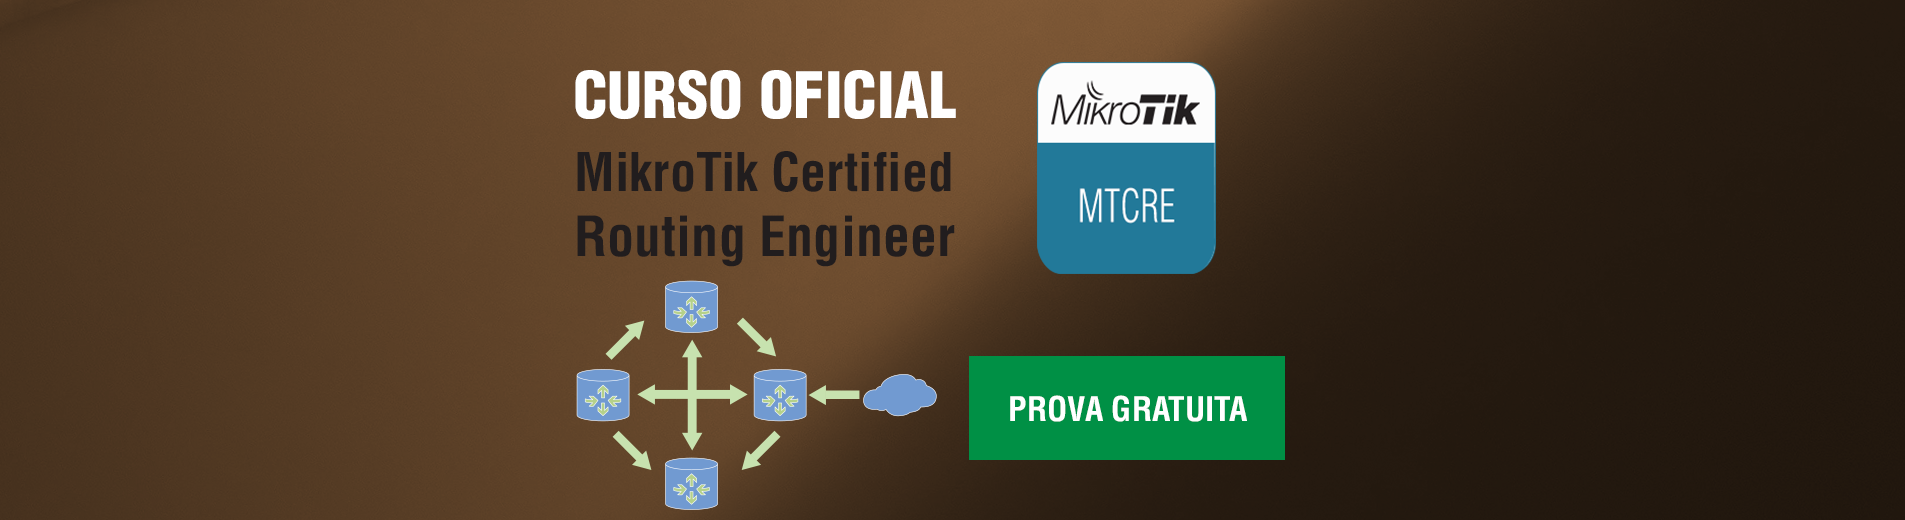 MTCRE - MikroTik Certified Routing Engineer